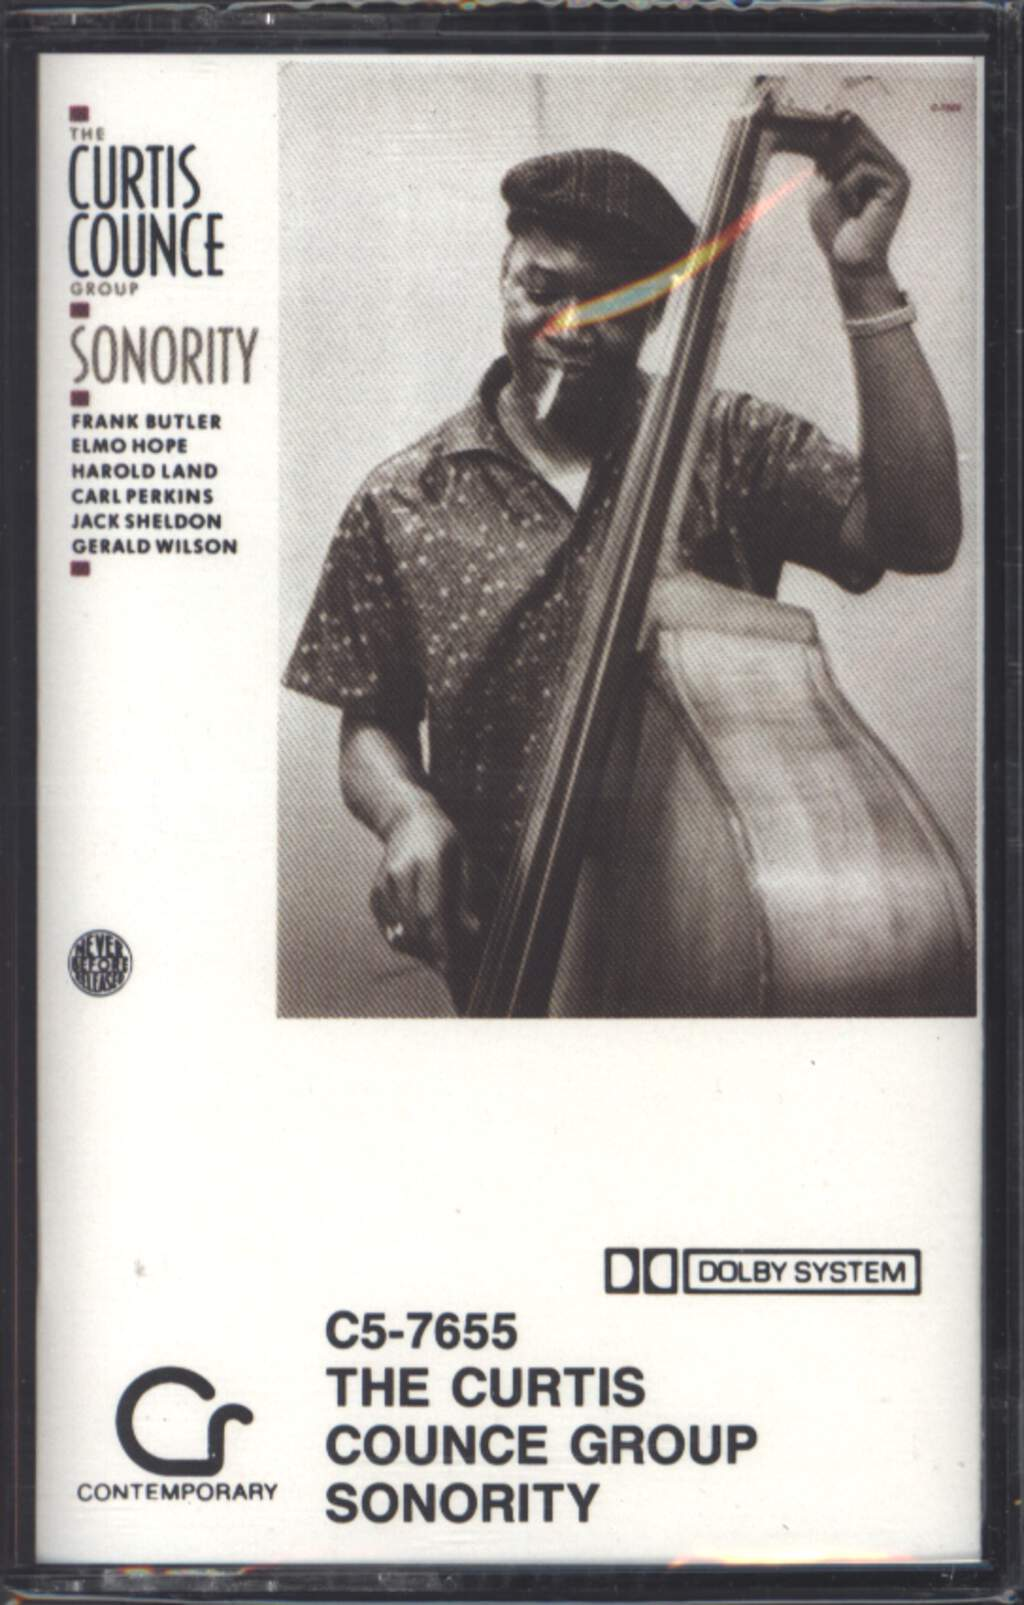 The Curtis Counce Group: Sonority, Tape